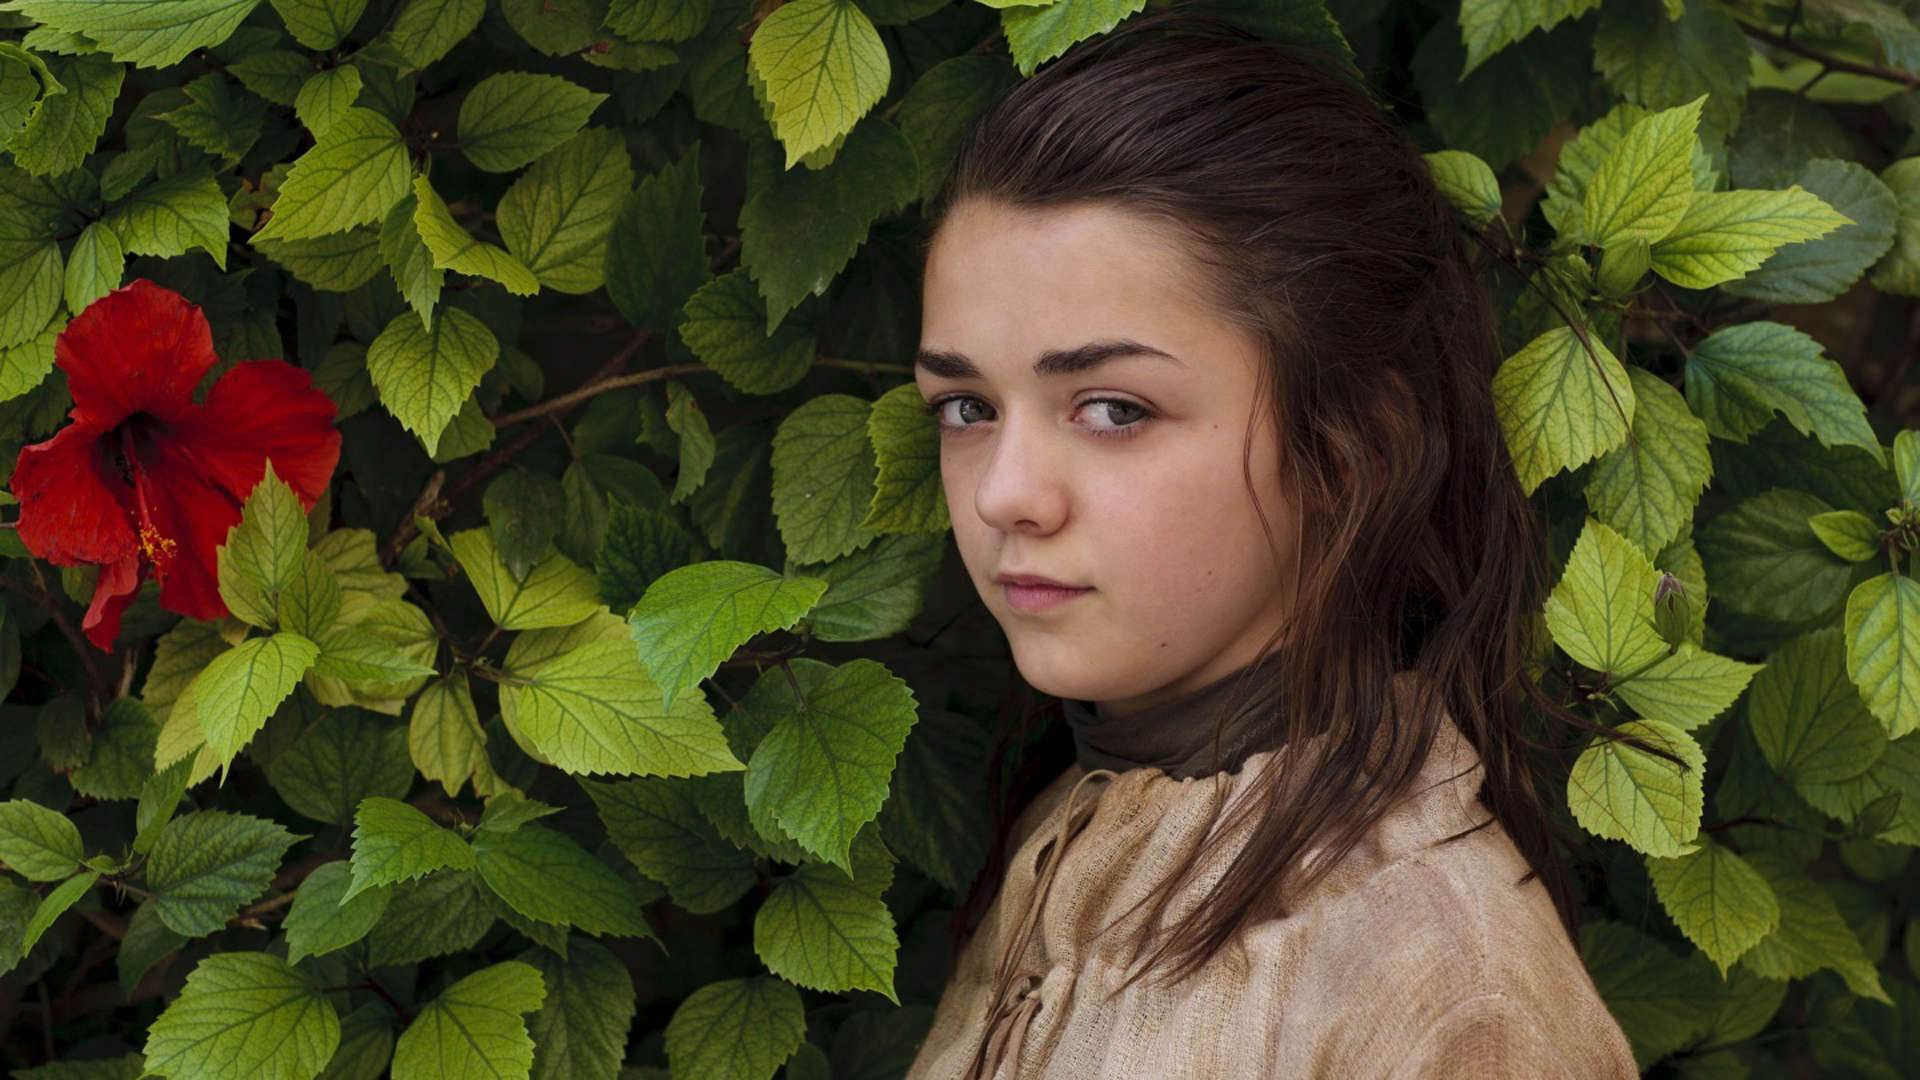 Computer Wallpaper For Teenage Girls 14 Hd Maisie Williams Wallpapers Hdwallsource Com